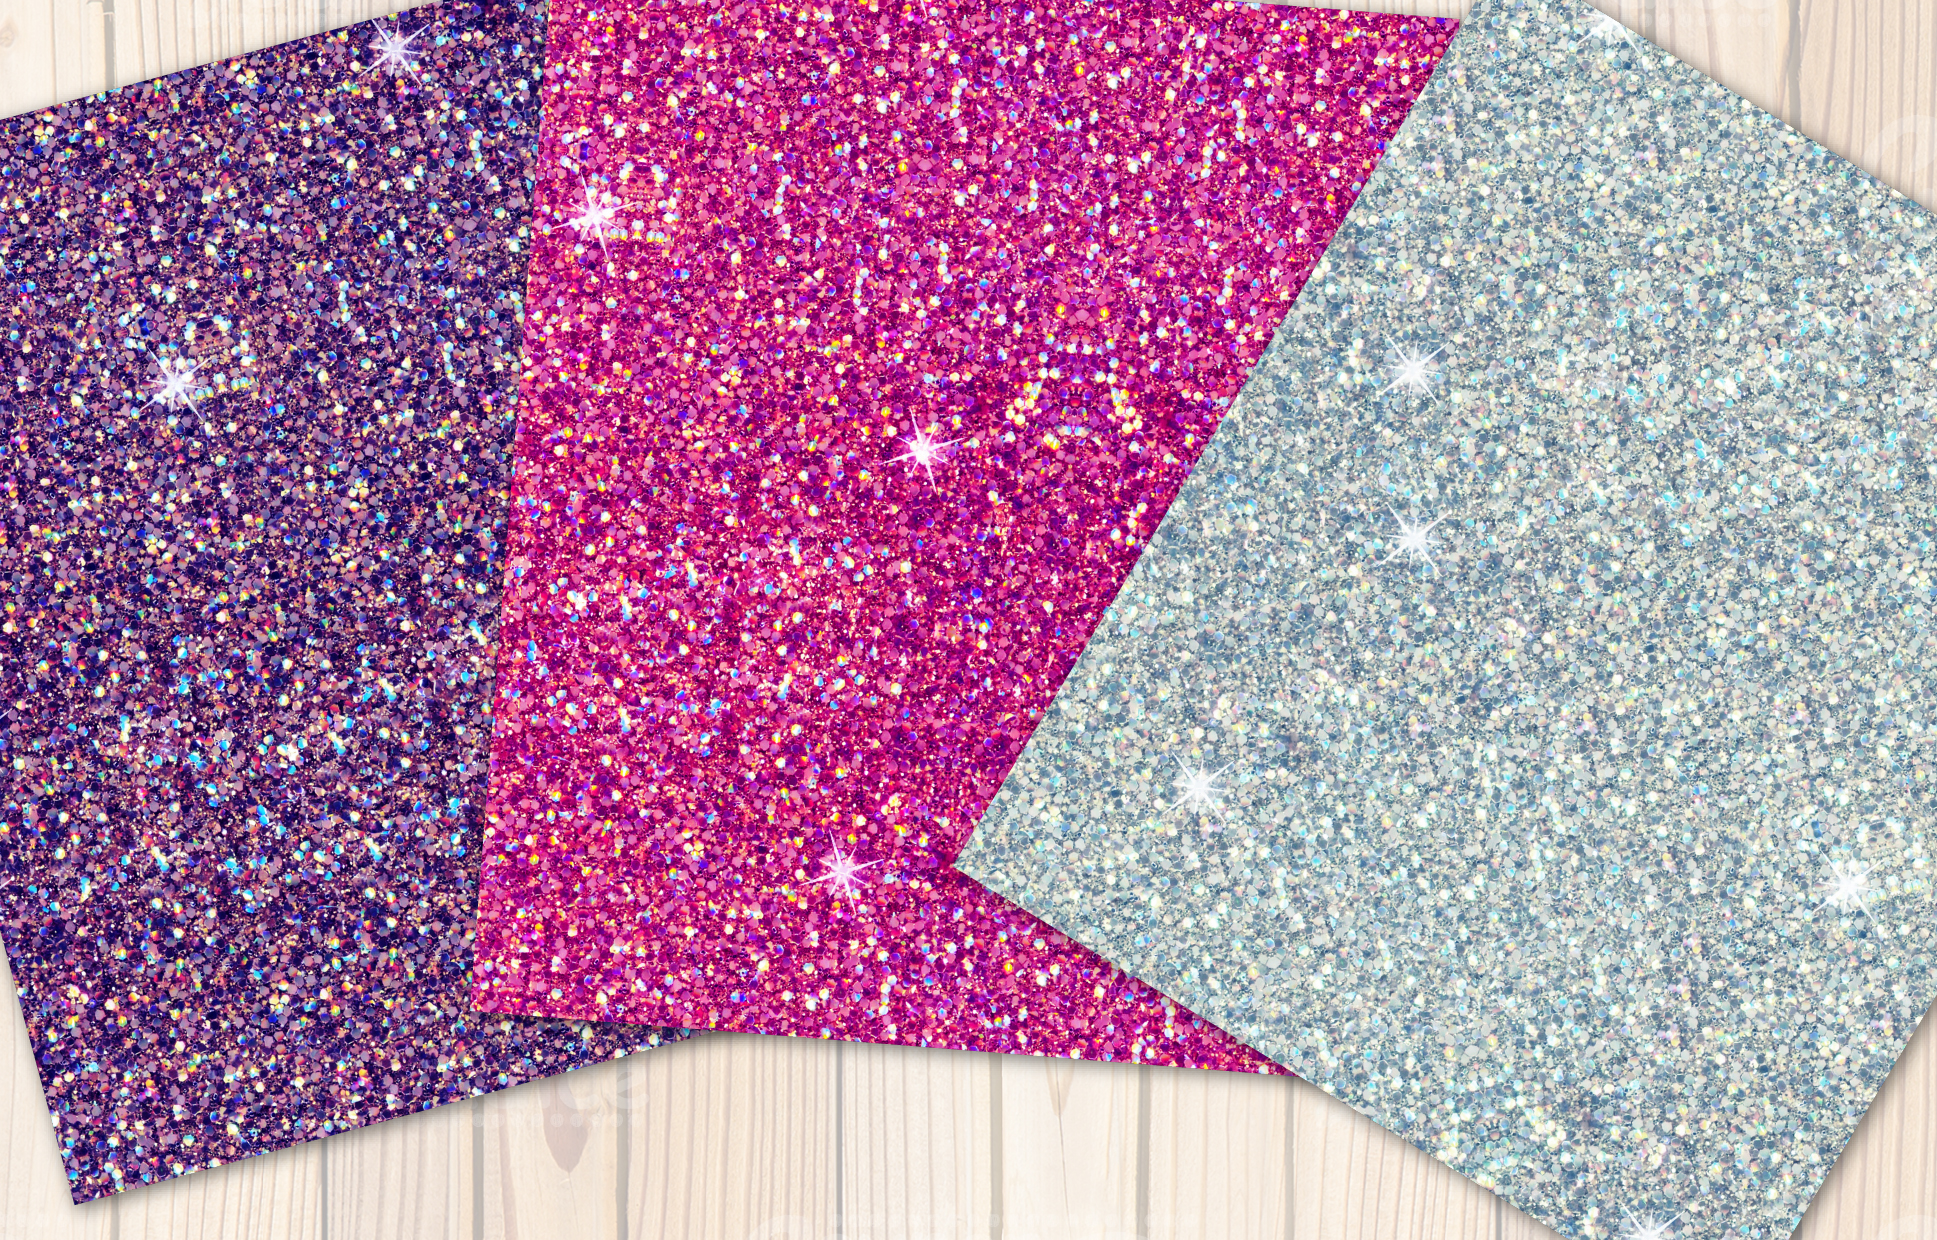 Moonlight glitter collection example image 4